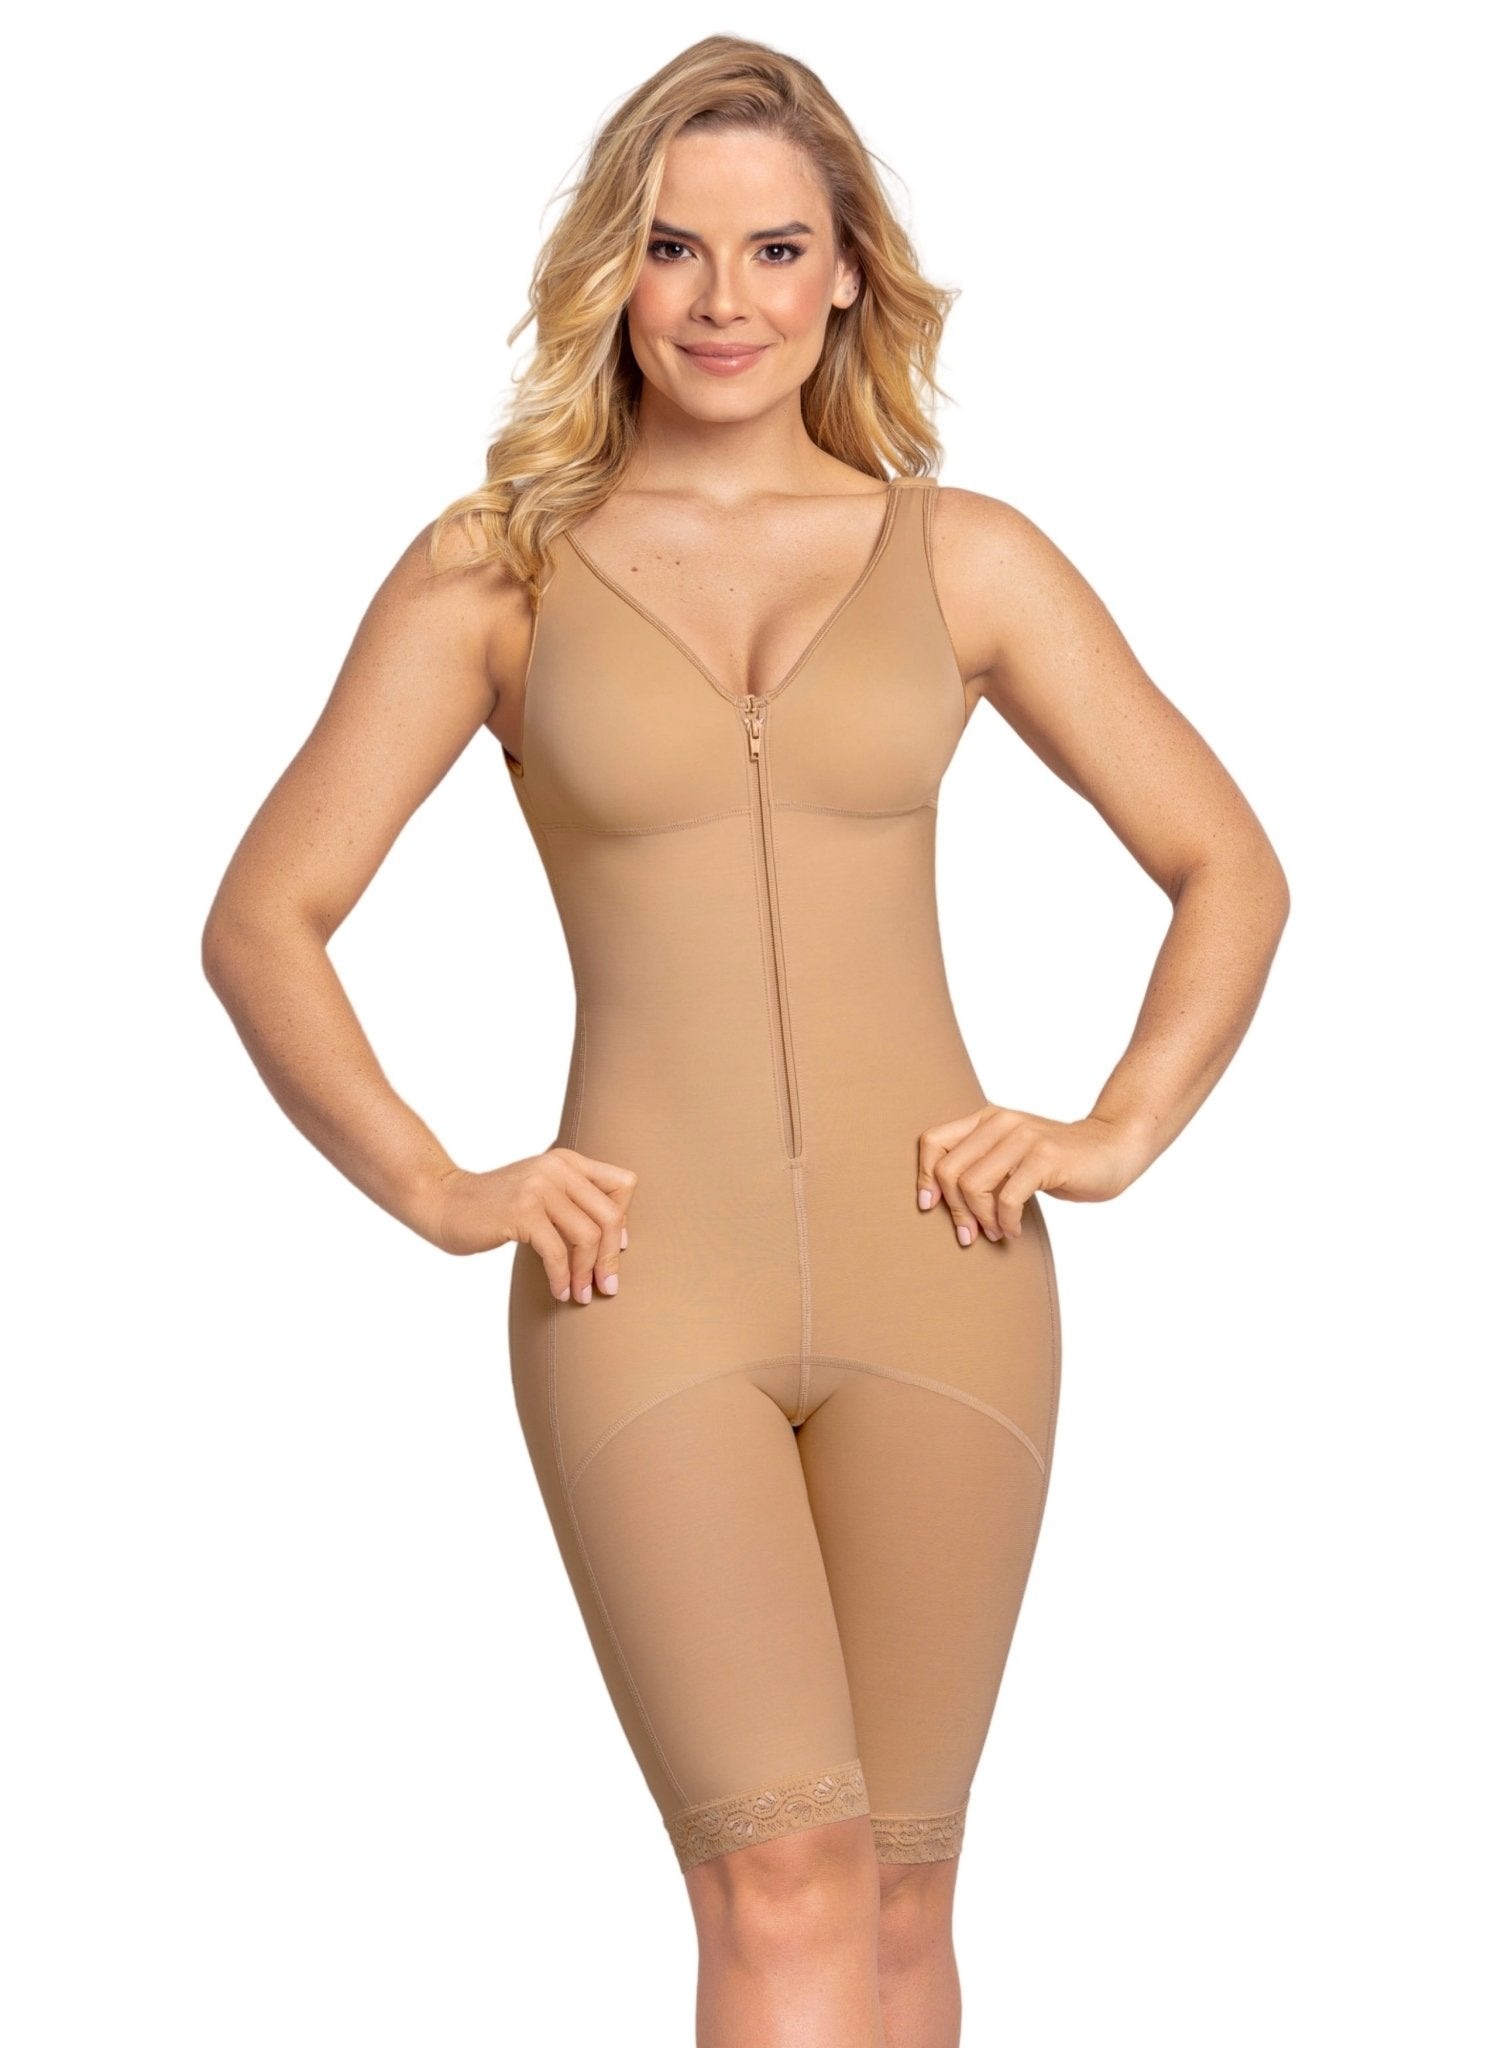 Full Bodysuit Slimming Shaper - Nude - Mums and Bumps